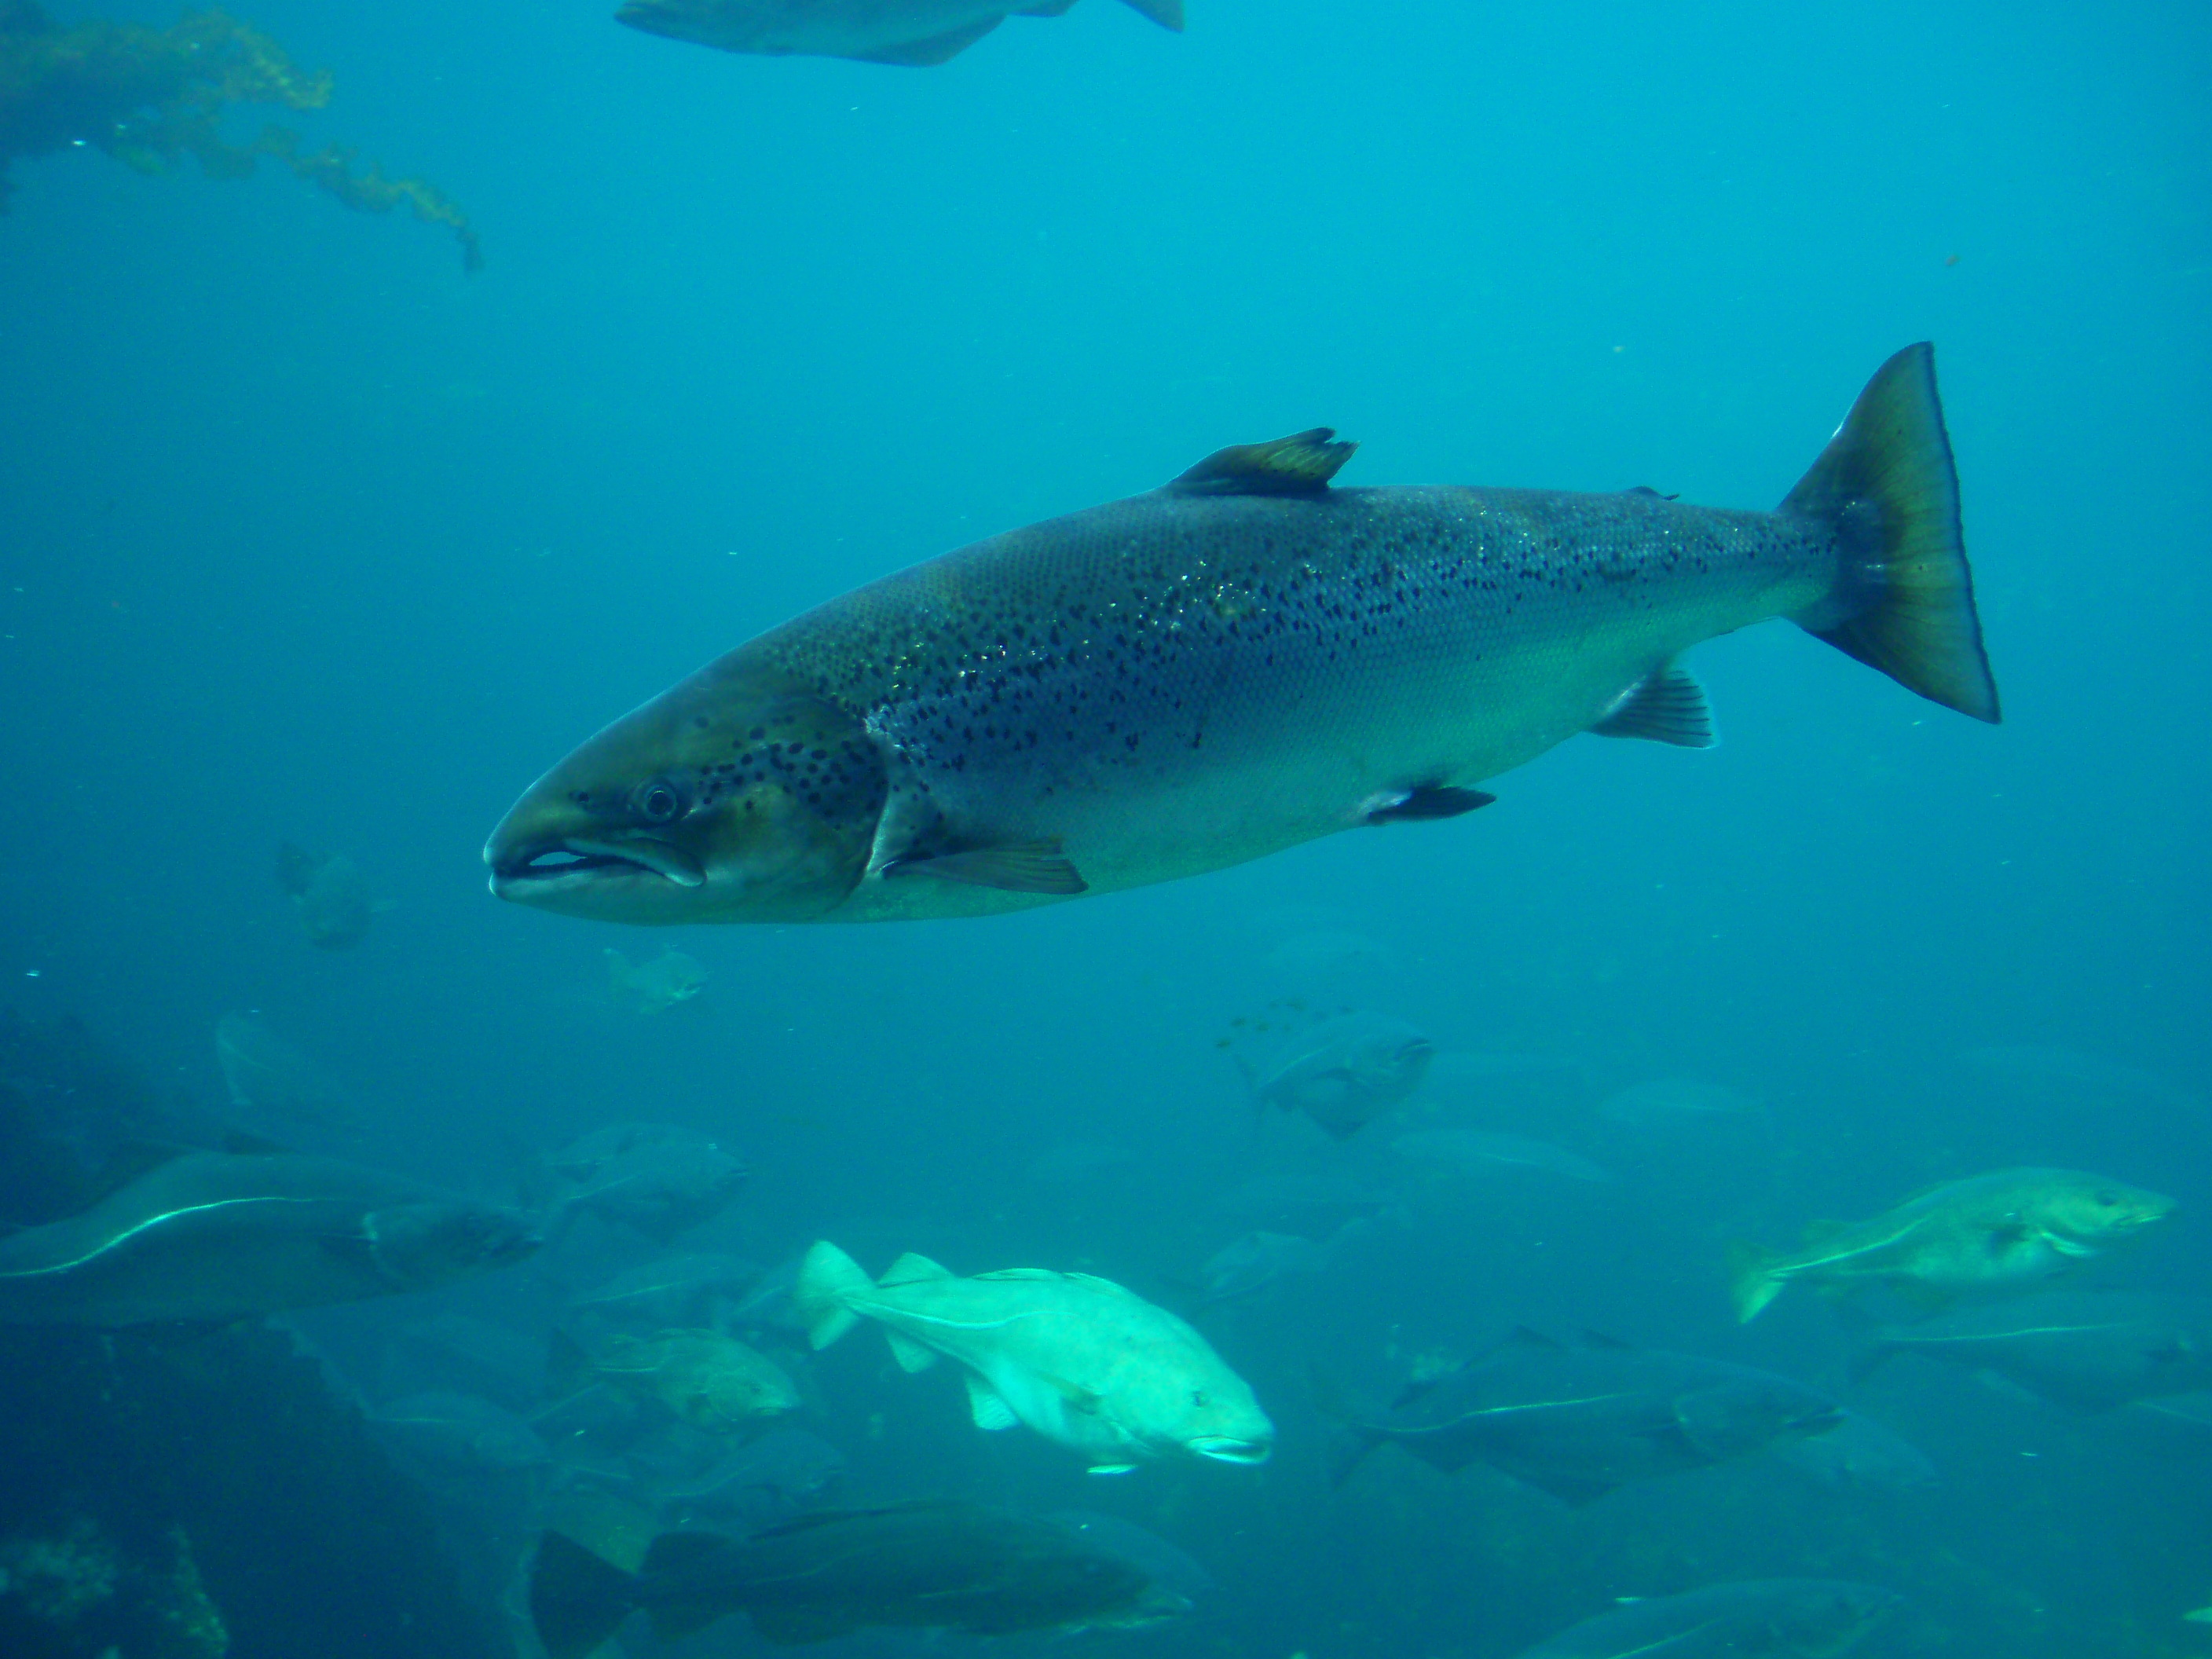 Atlantic salmon wallpaper